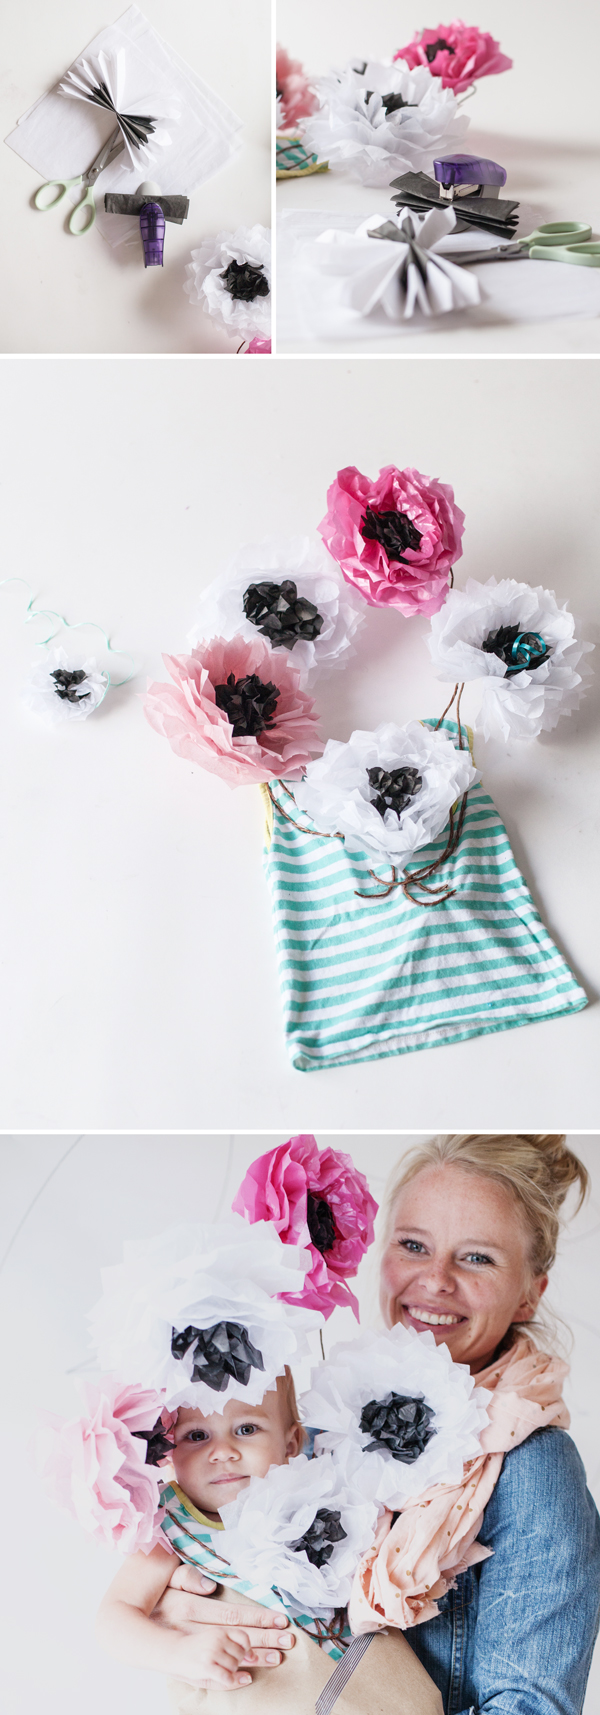 DIY Flower Bouquet Costume for Baby Instructions